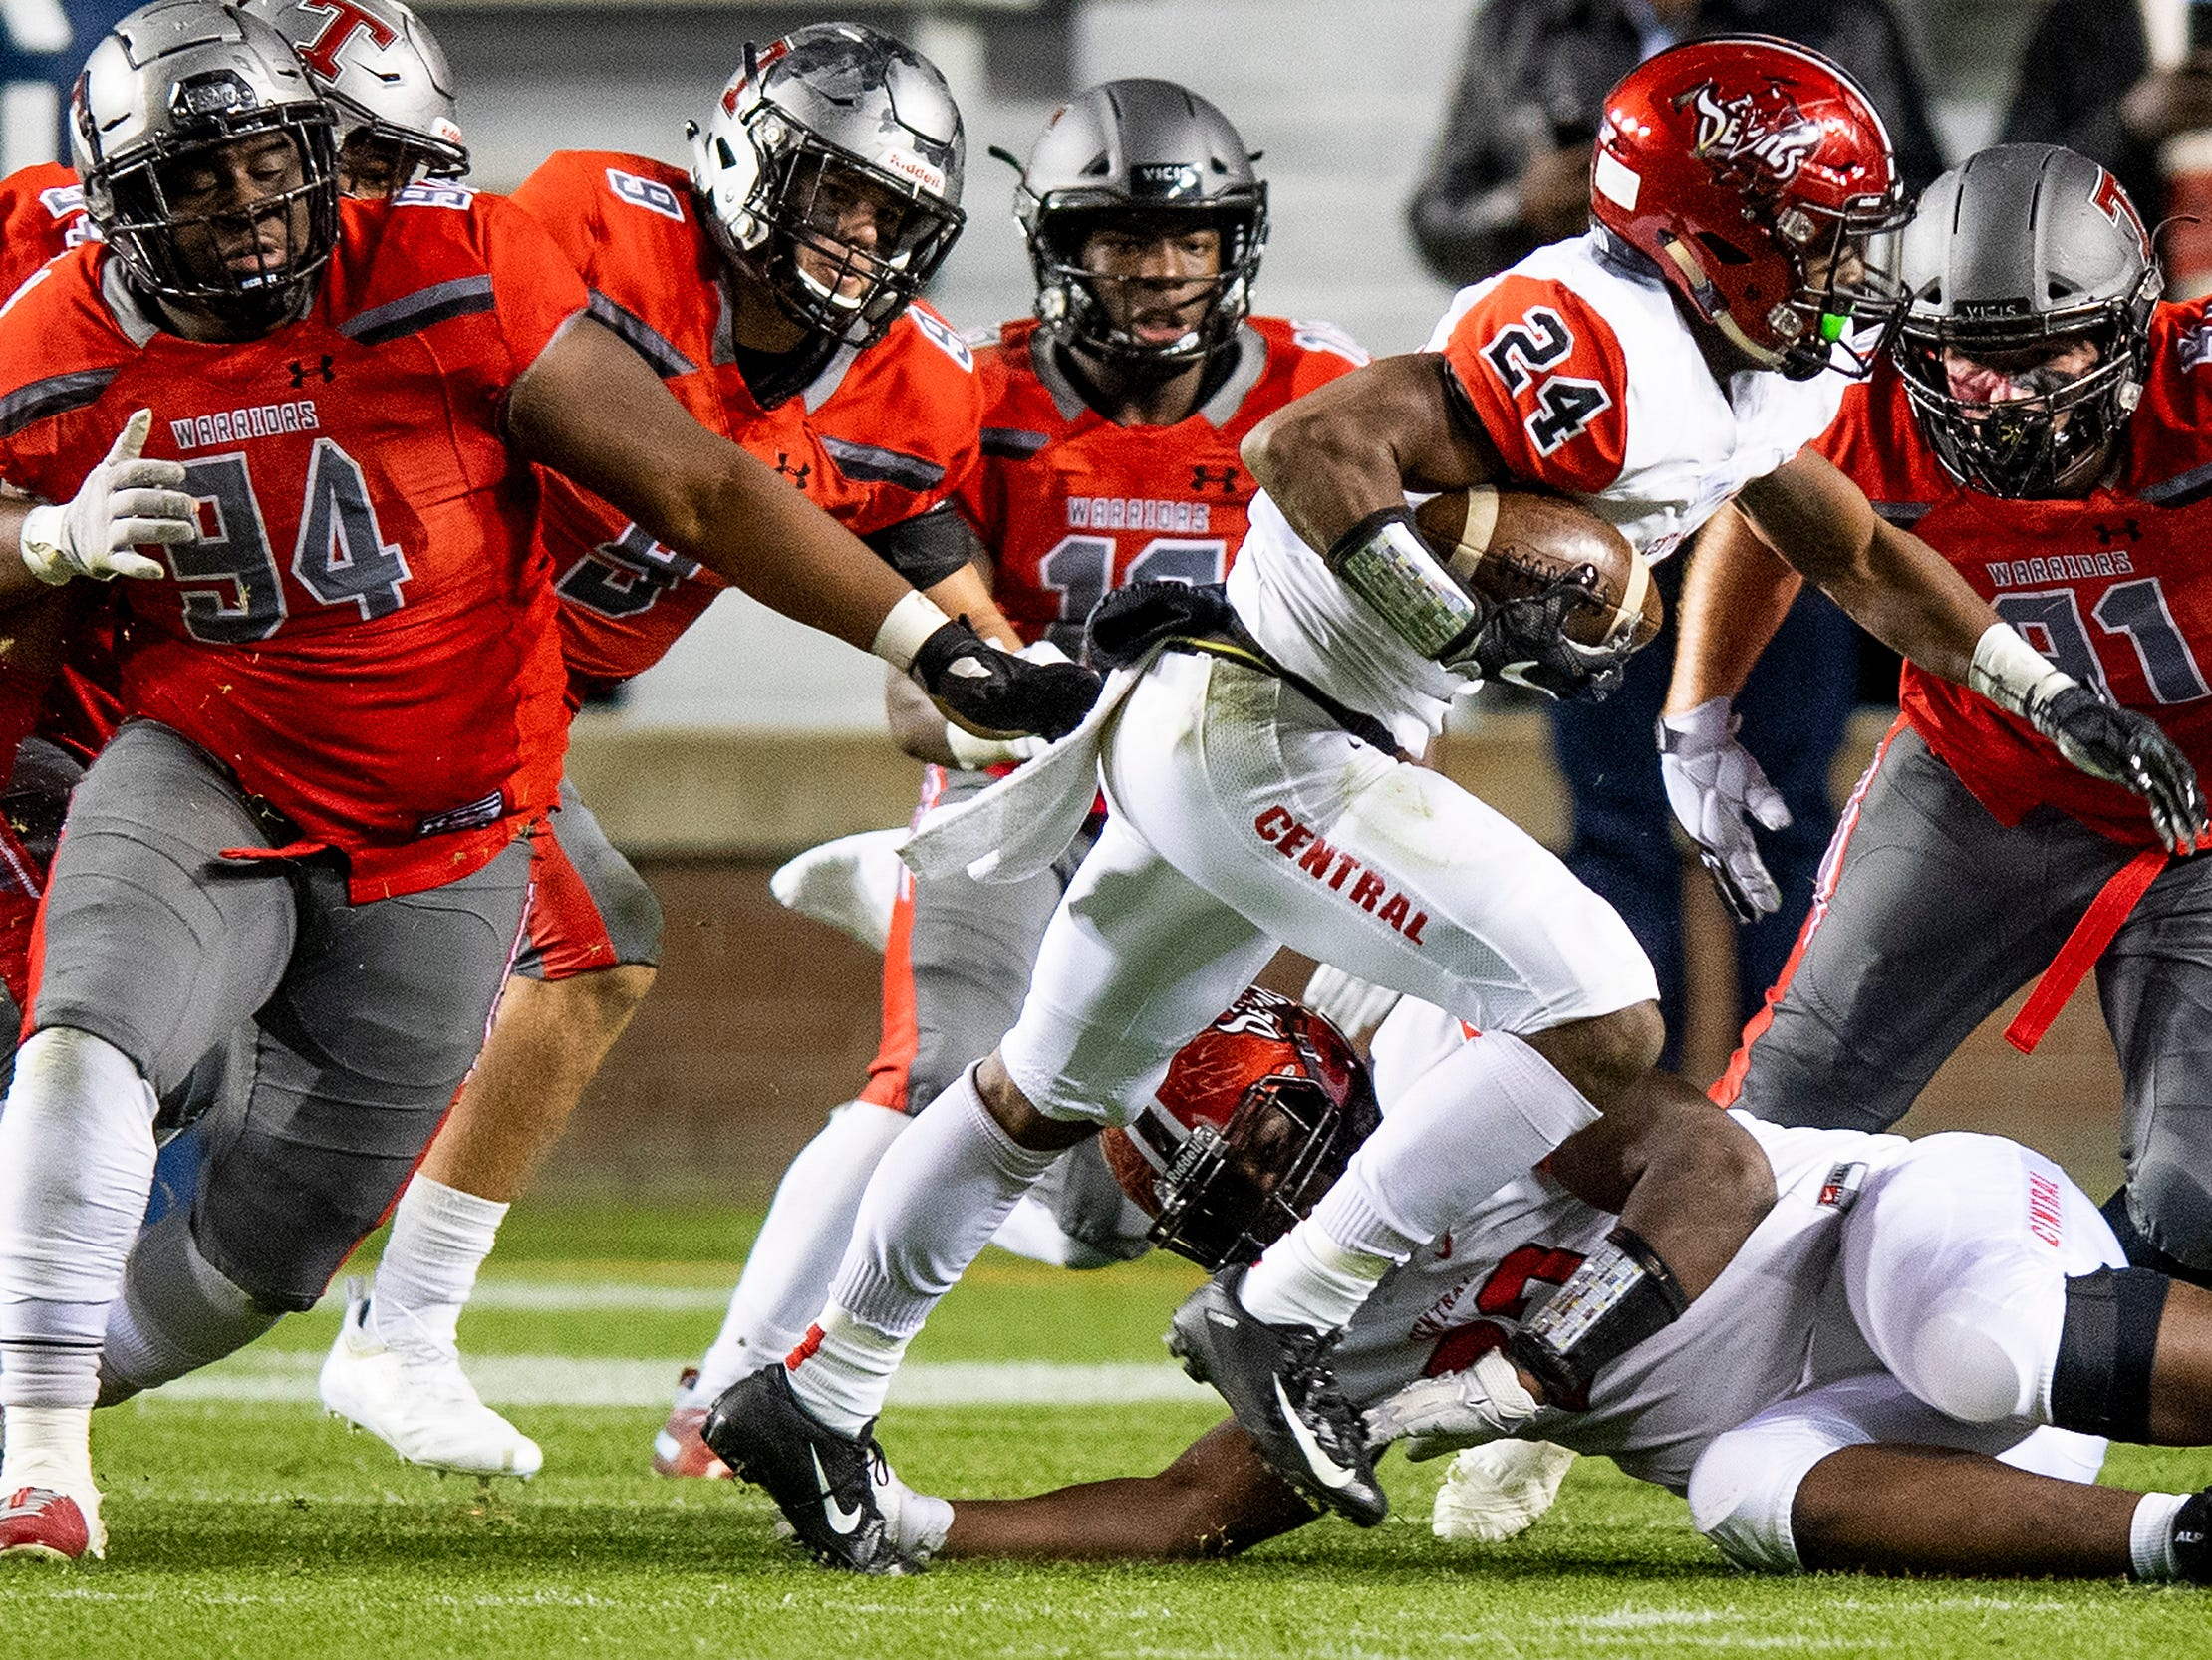 Central-Phenix City's Amontae Spivey breaks free for a second quarter touchdown against Thompson during the AHSAA Class 7A State Championship Football Game at Jordan Hare Stadium in Auburn, Ala., on Wednesday evening December 5, 2018.